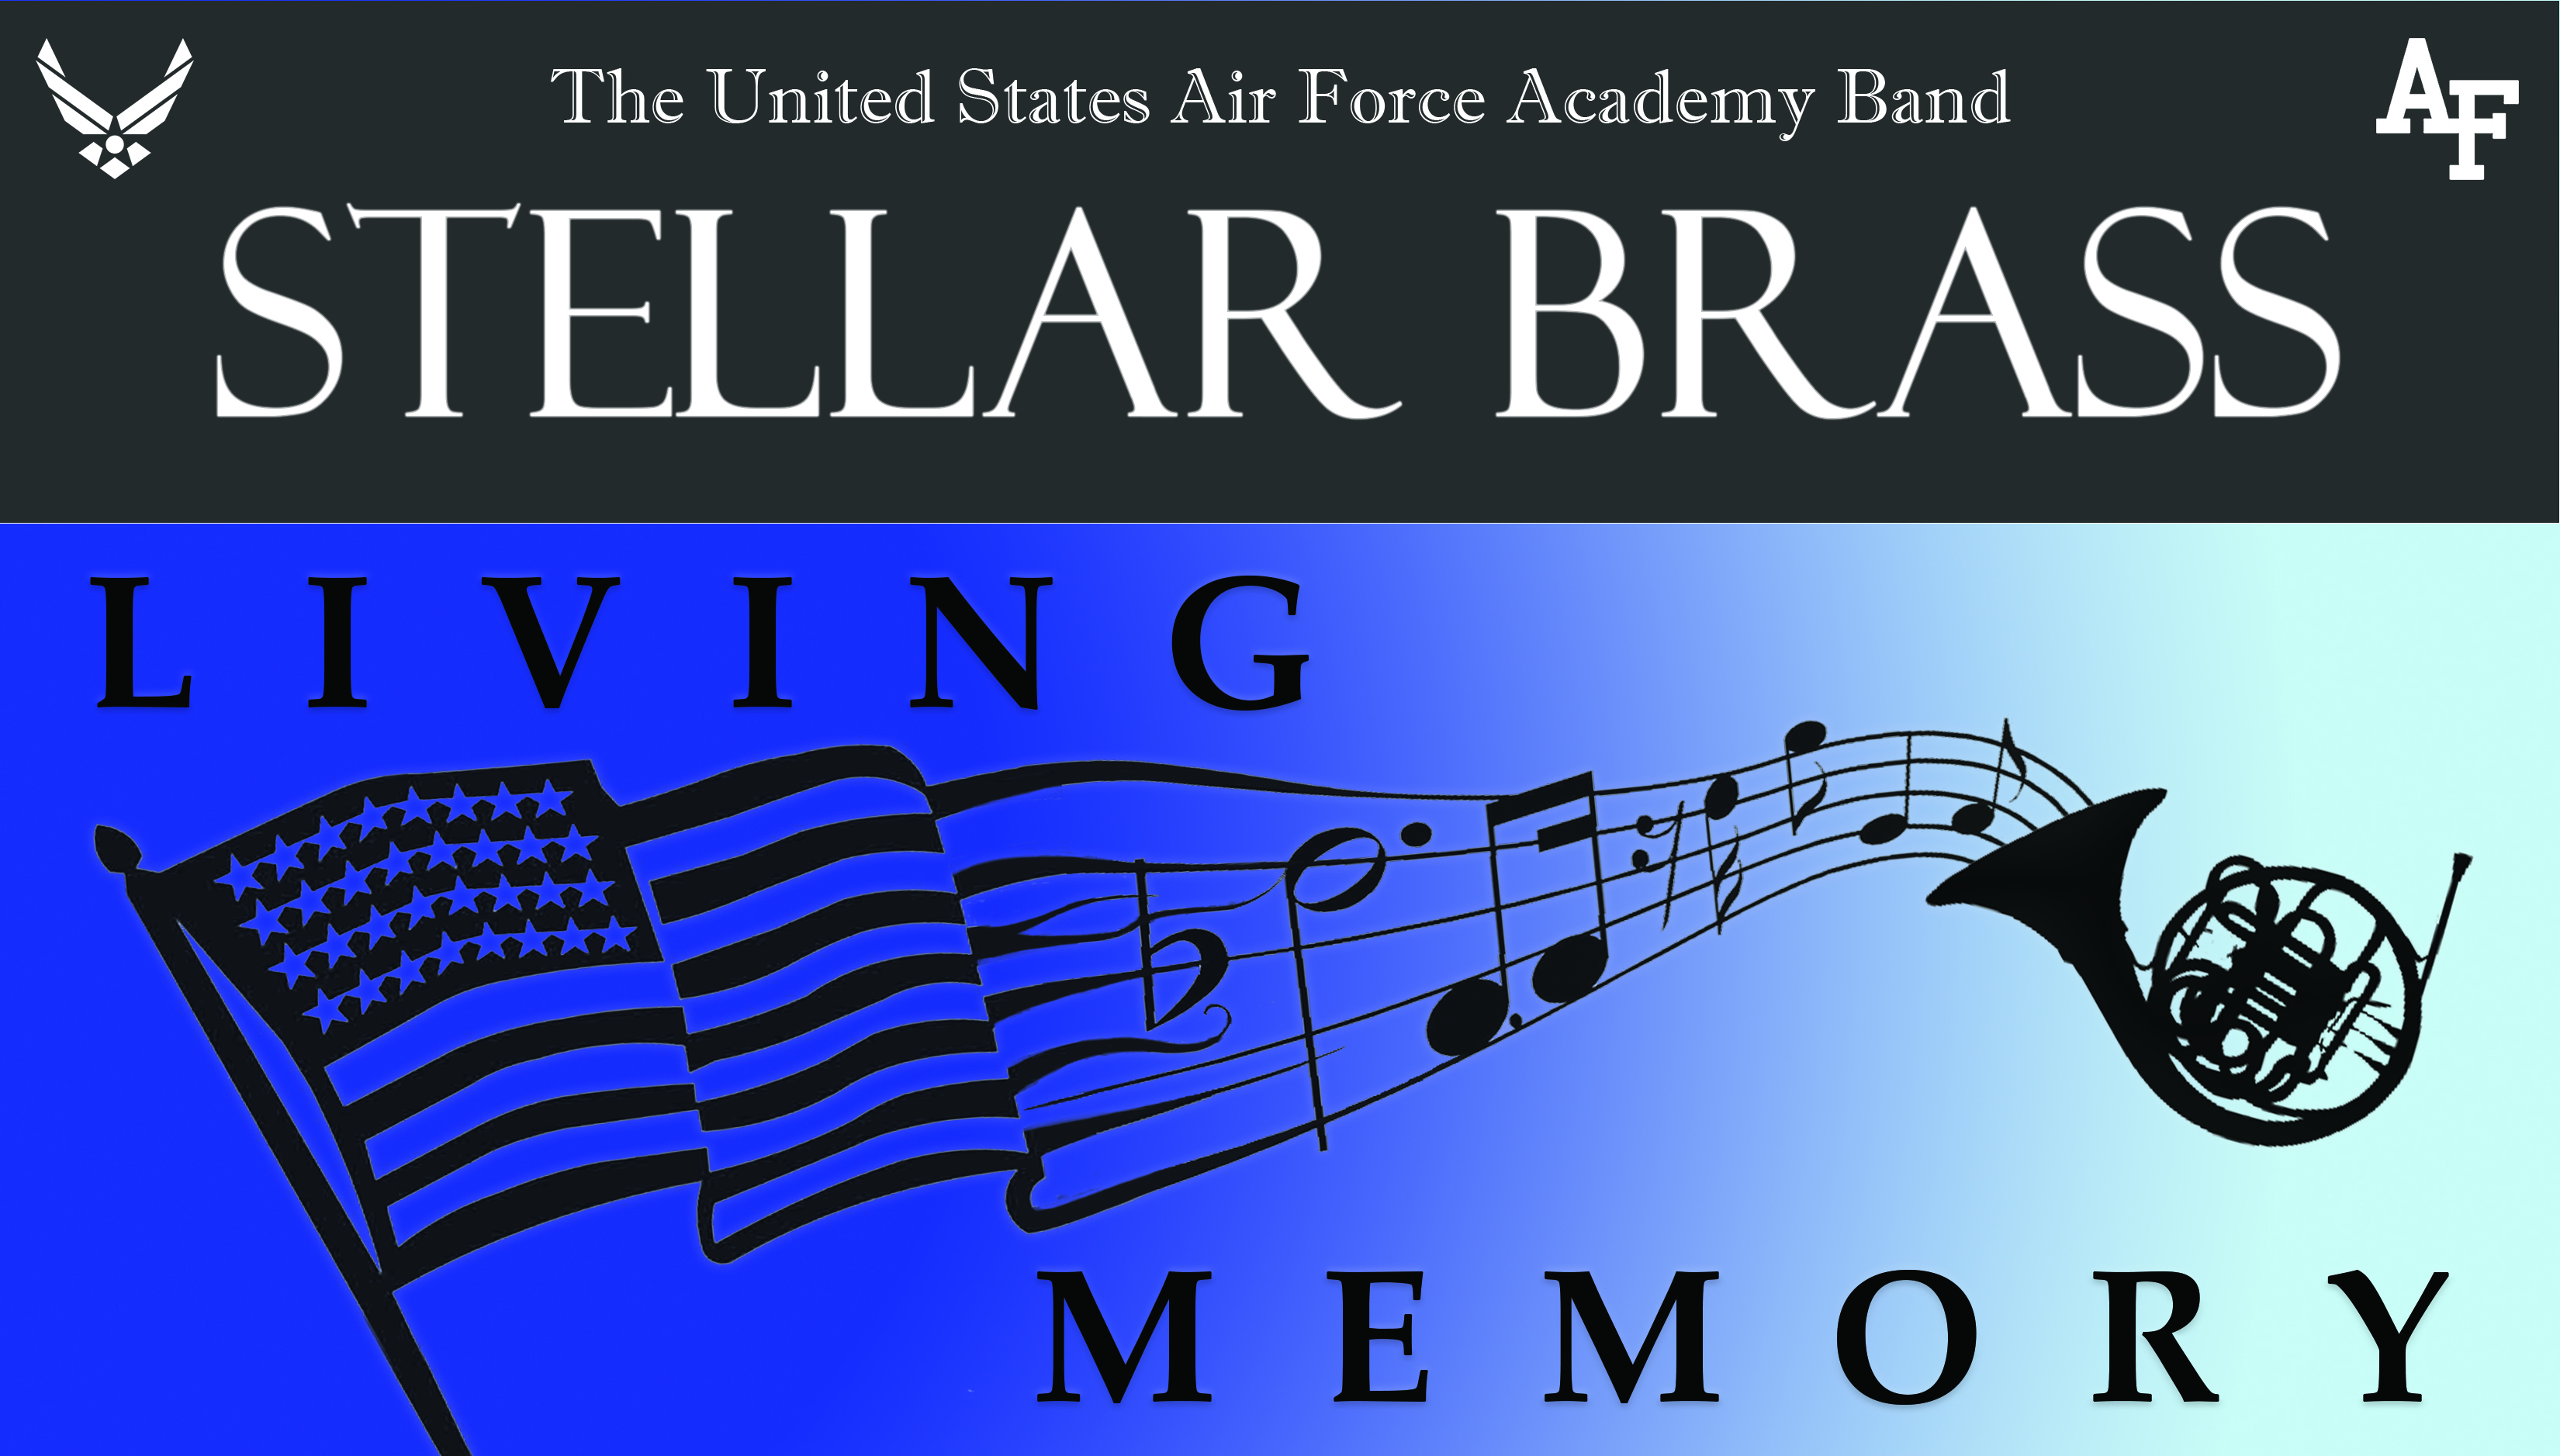 poster of flag with music notes about the Air Force Academy Band Stellar Brass